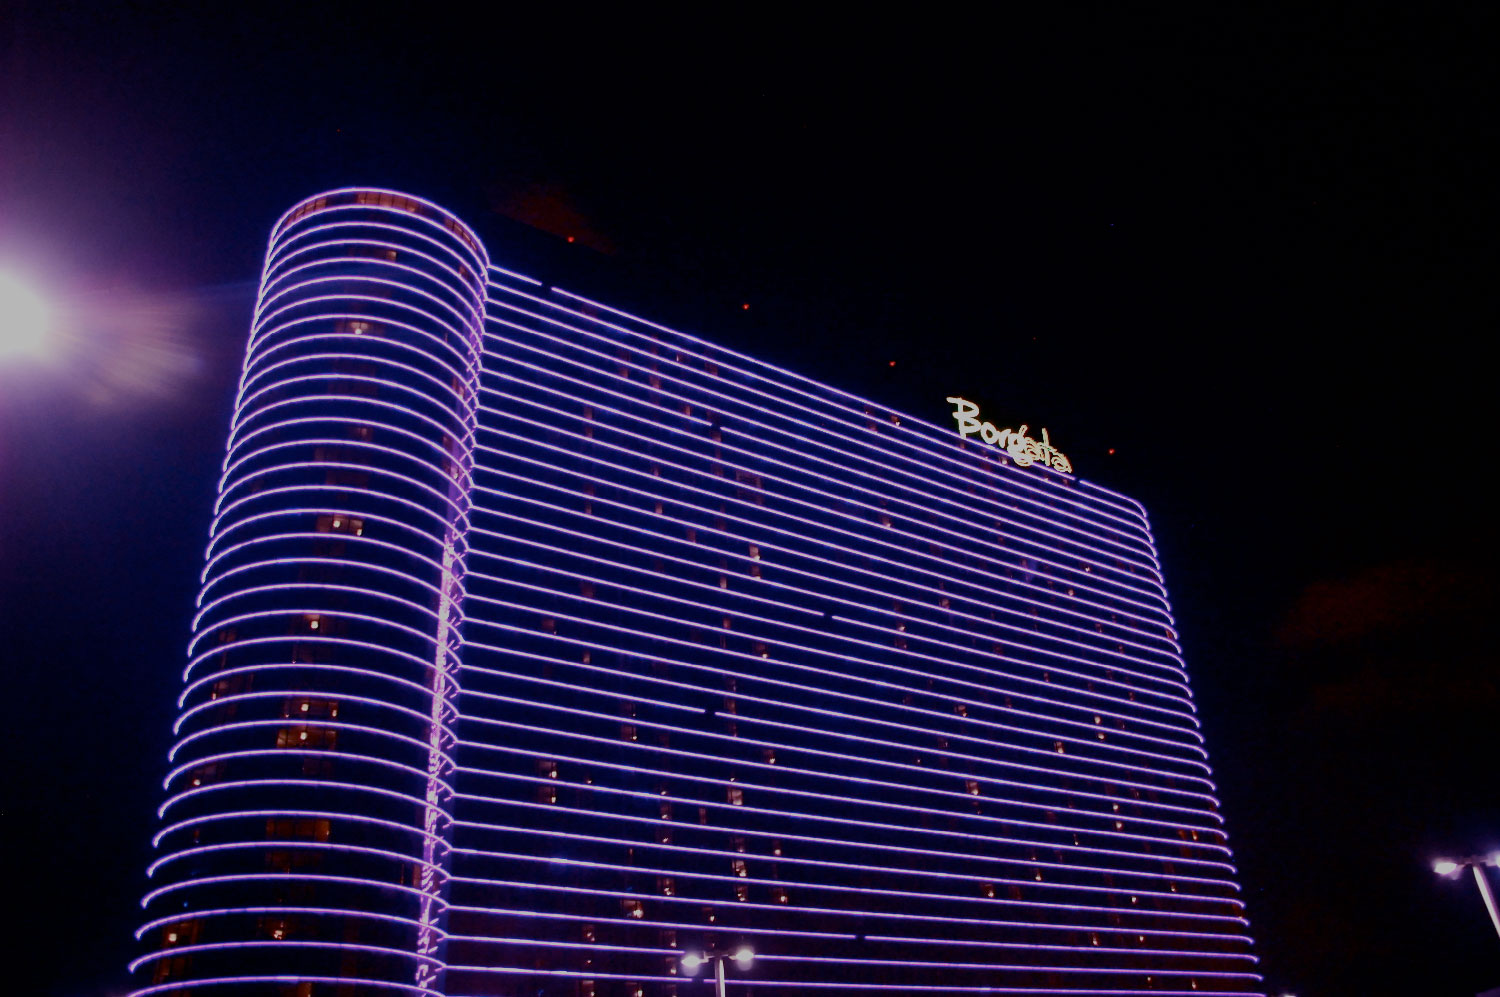 Borgata Hotel Casino Atlantic City